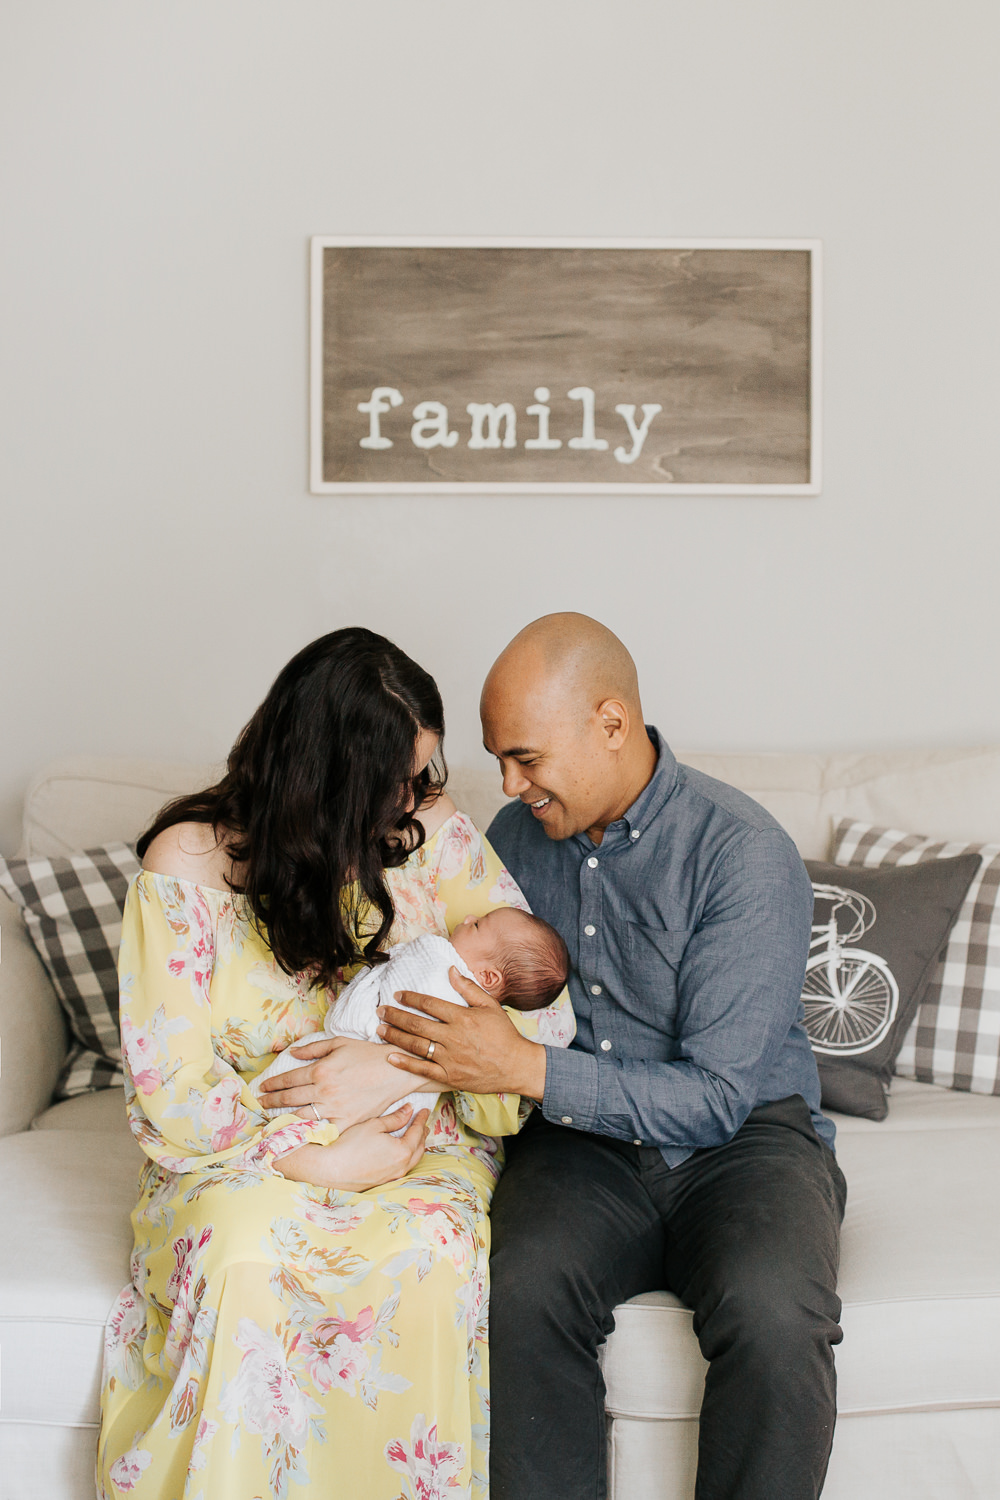 new parents sitting on couch, 3 week old baby boy in mother's arms, father hand on son, smiling - GTA Lifestyle Photography